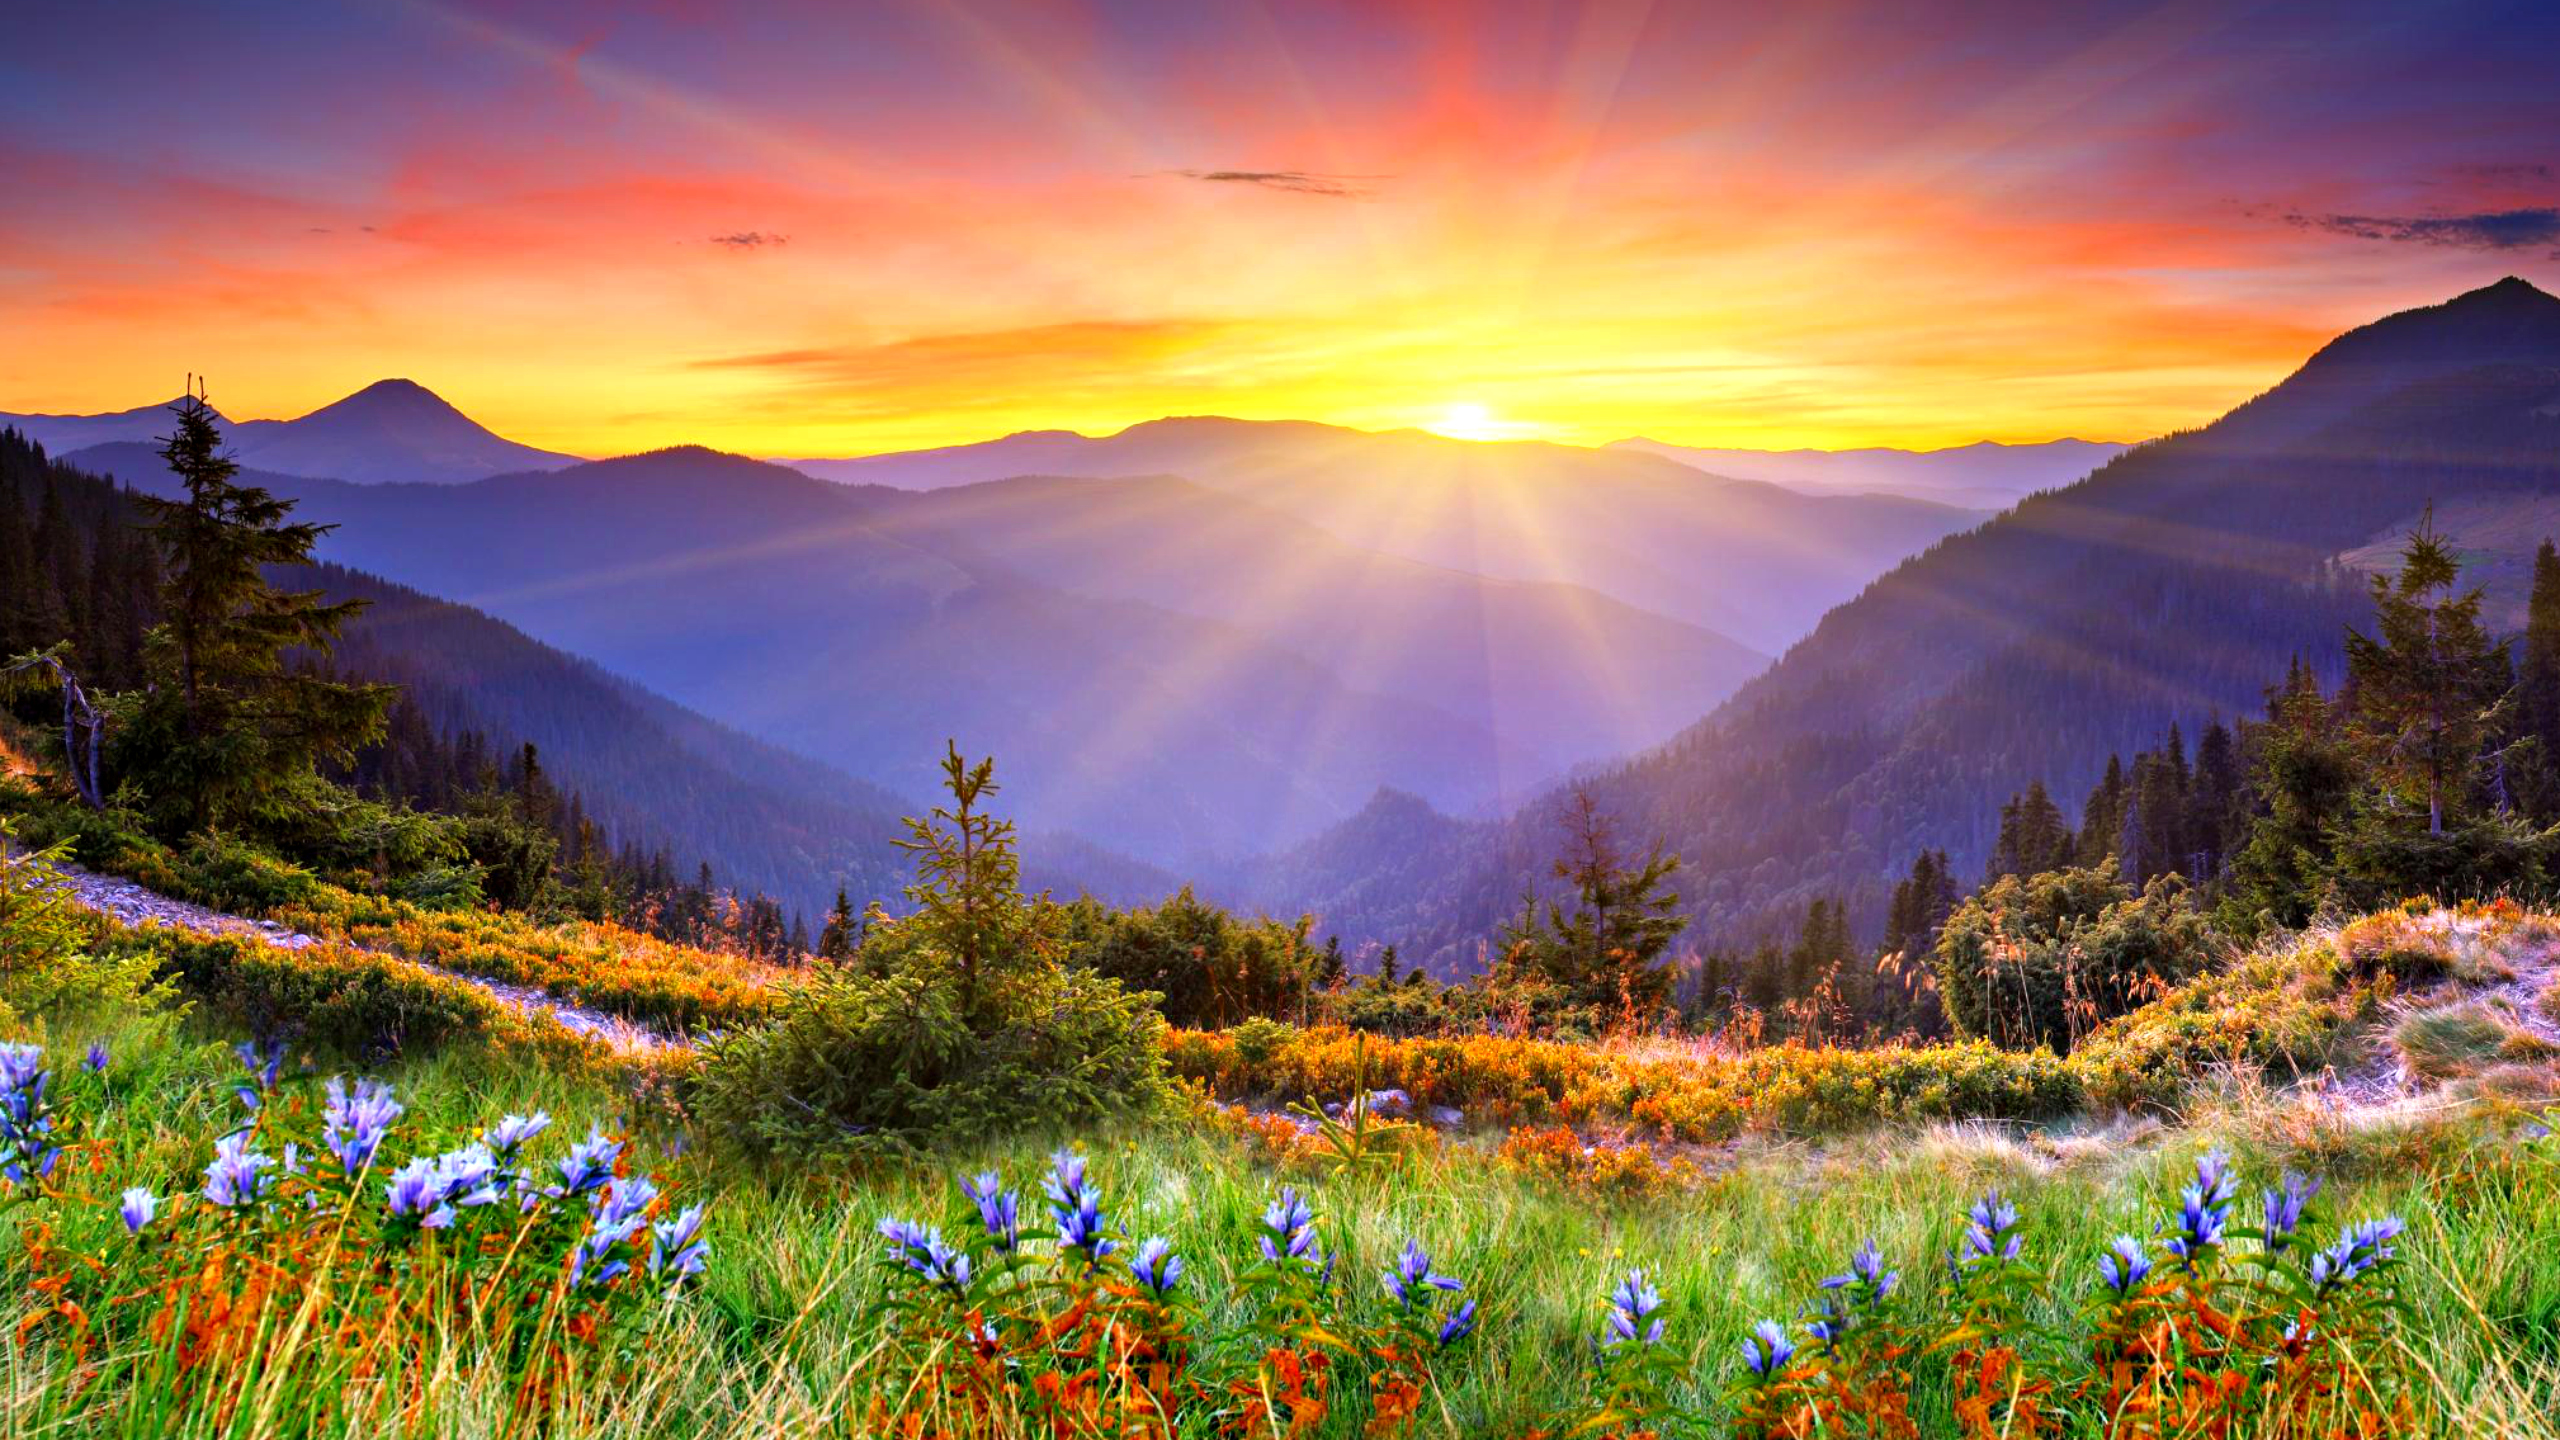 beautiful sunrise wallpaper 34171 34940 hd wallpapersjpg 2560x1440